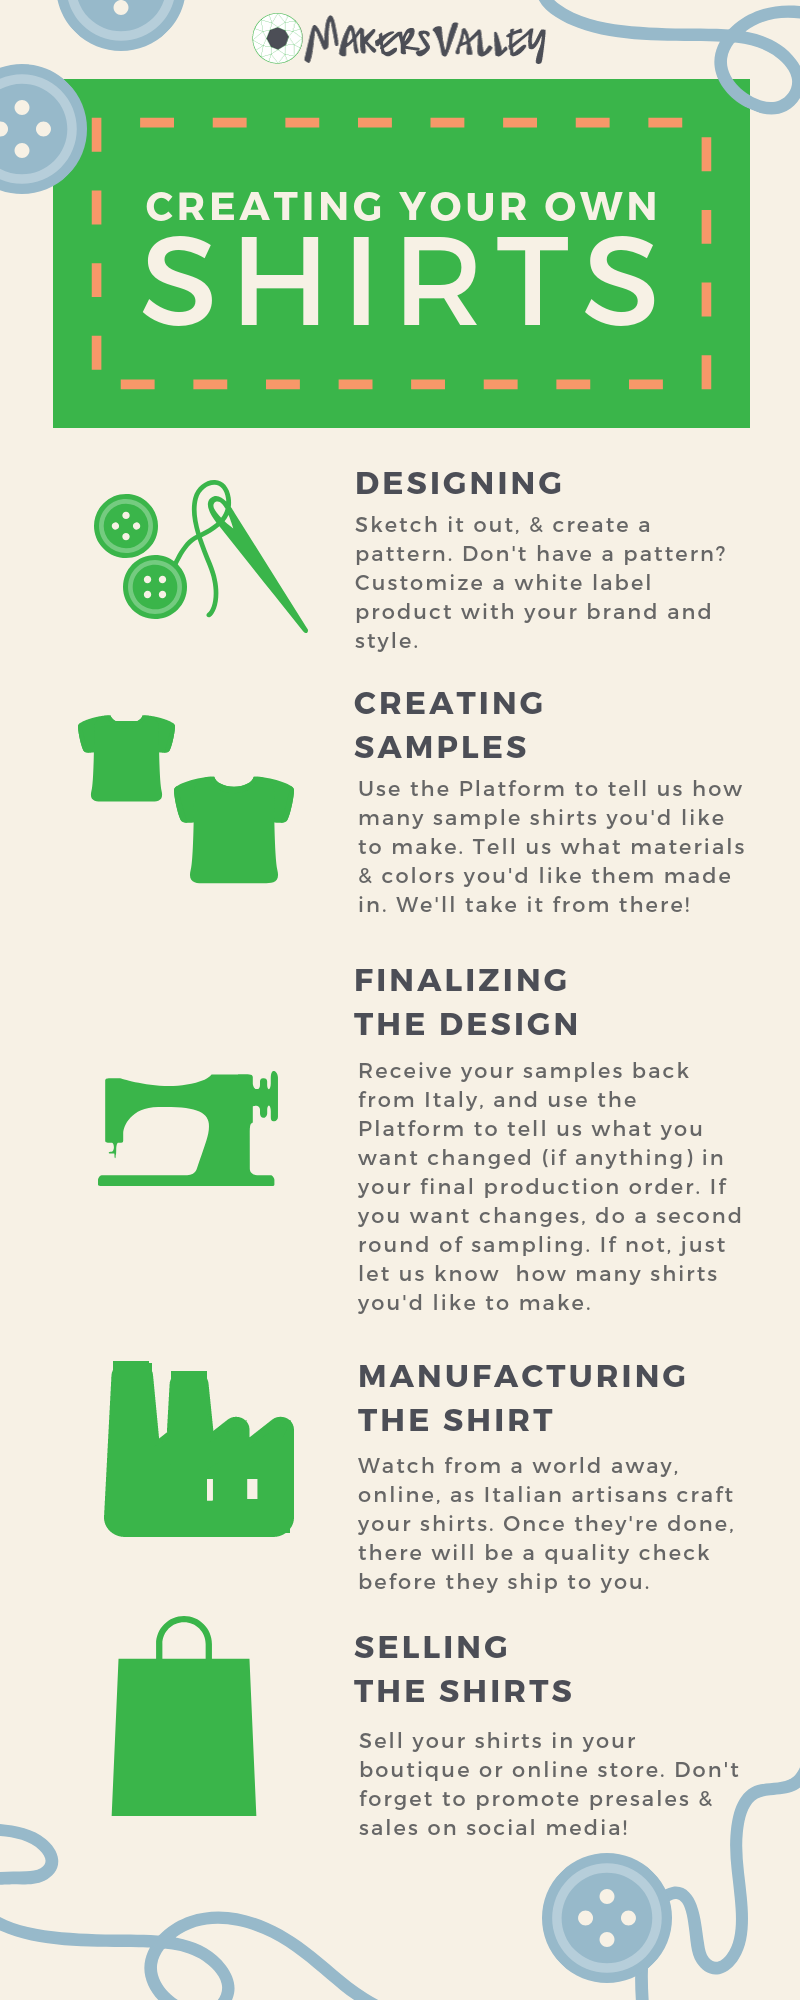 Design a shirt in Italy, using the completely online MakersValley Platform 5-step process. | MakersValley Blog